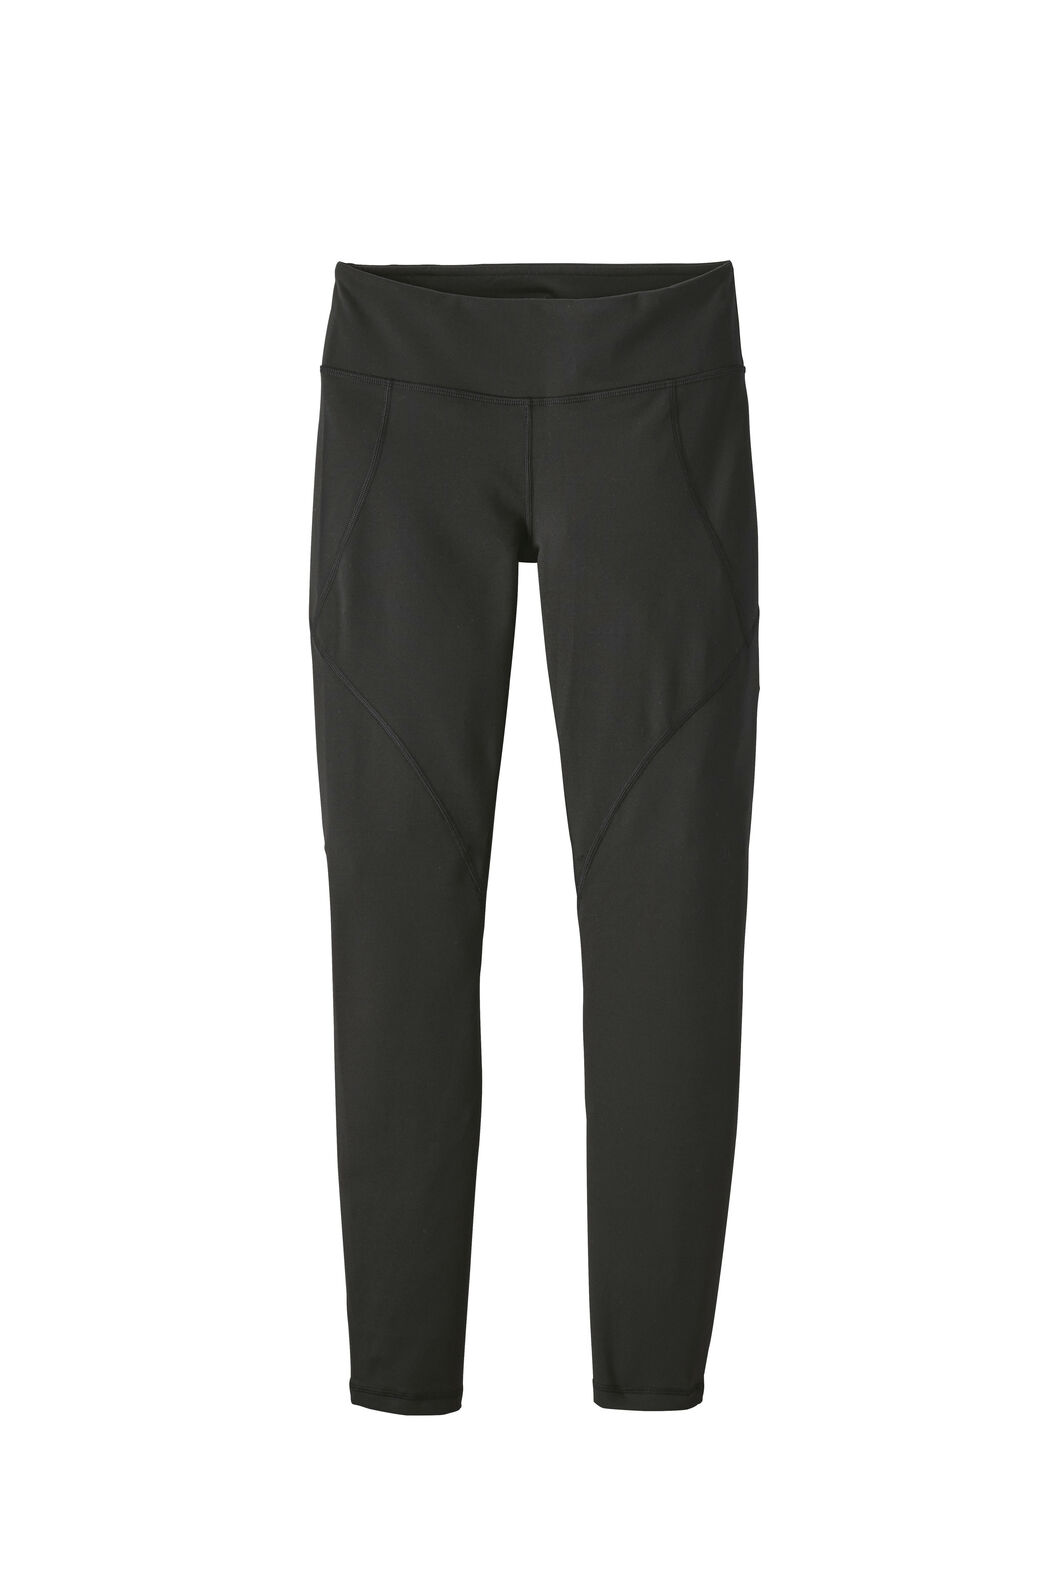 Patagonia Centered Tights — Women's, Black, hi-res